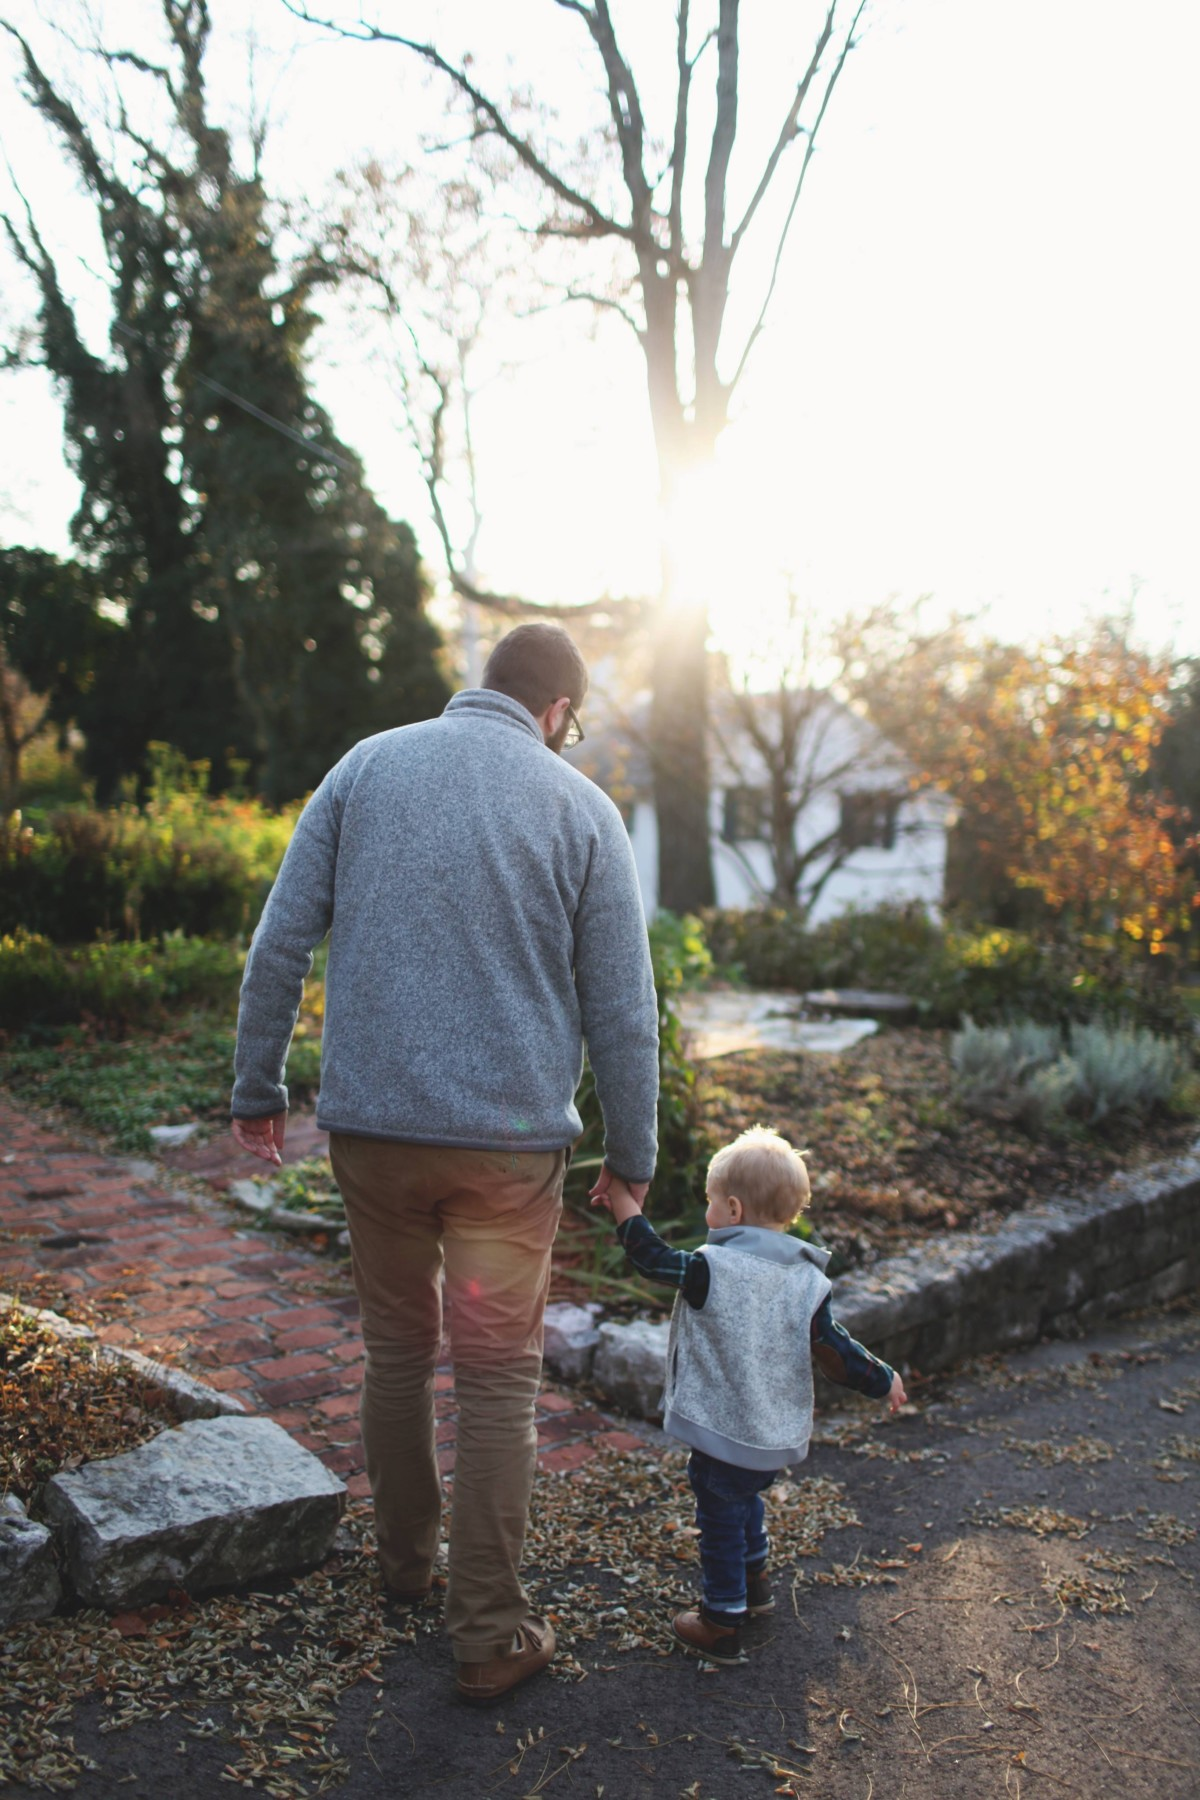 Our Favorite Dad Fashion Staples: 5 Must-Have Brands